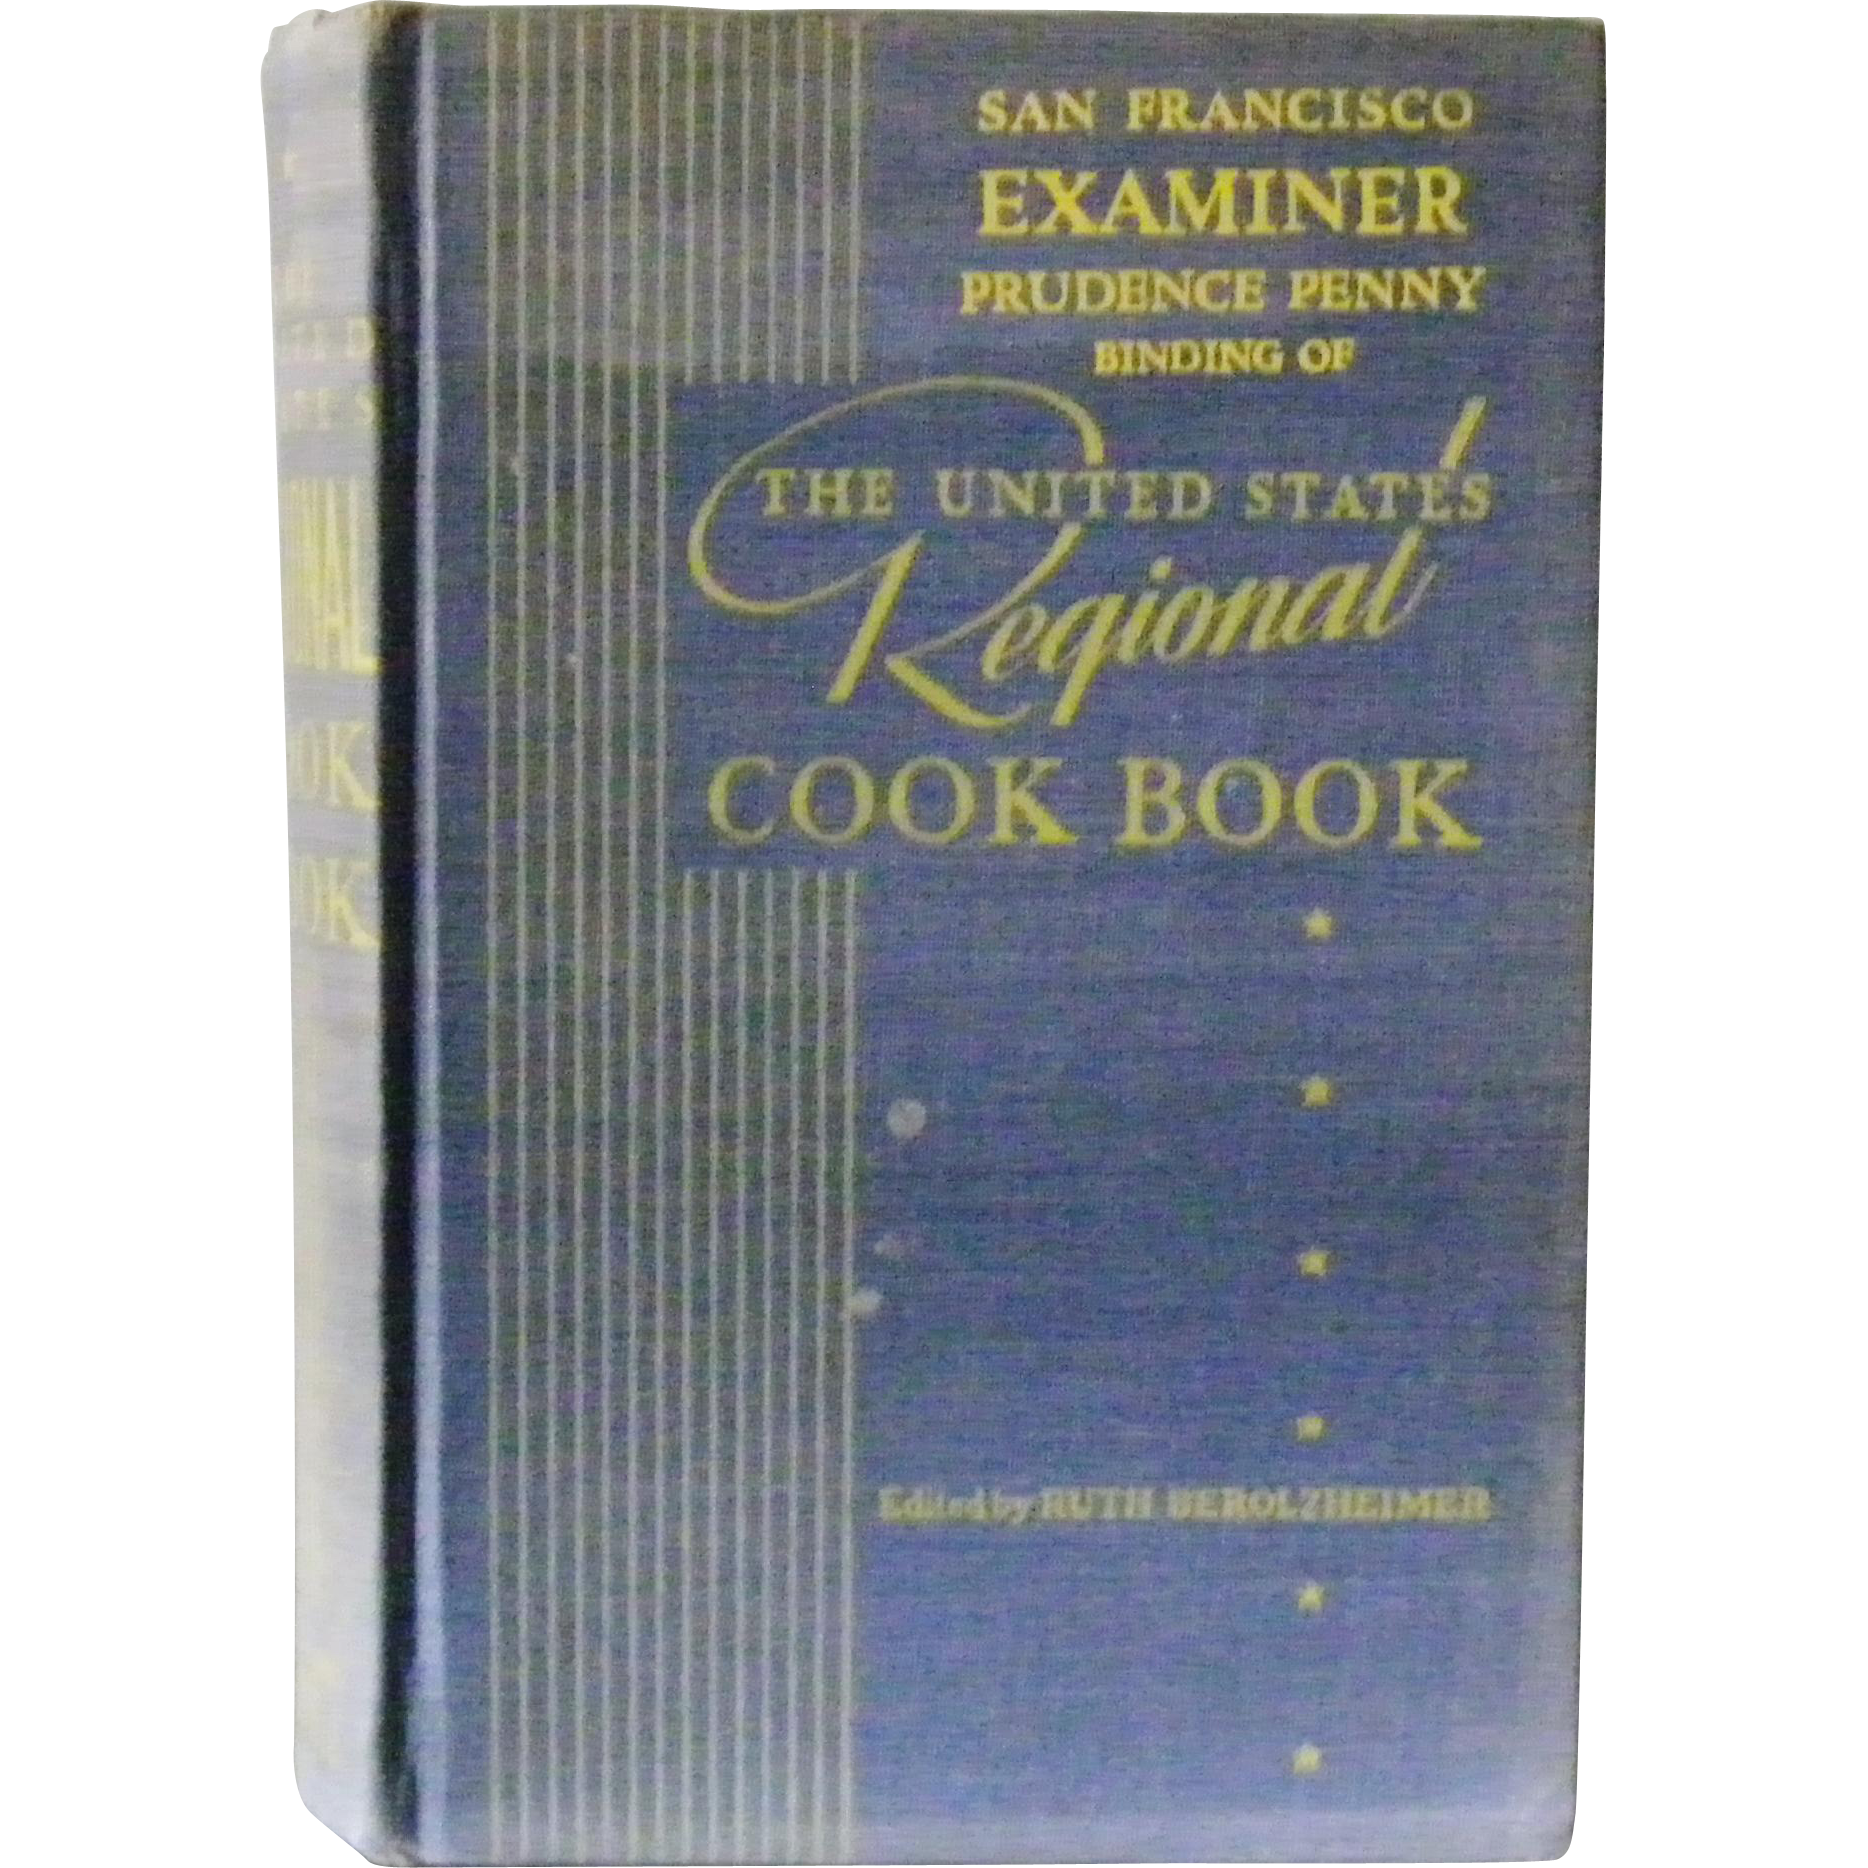 San Francisco Examiner Prudence Penny Binding of The Unites States Regional Cook Book 1951